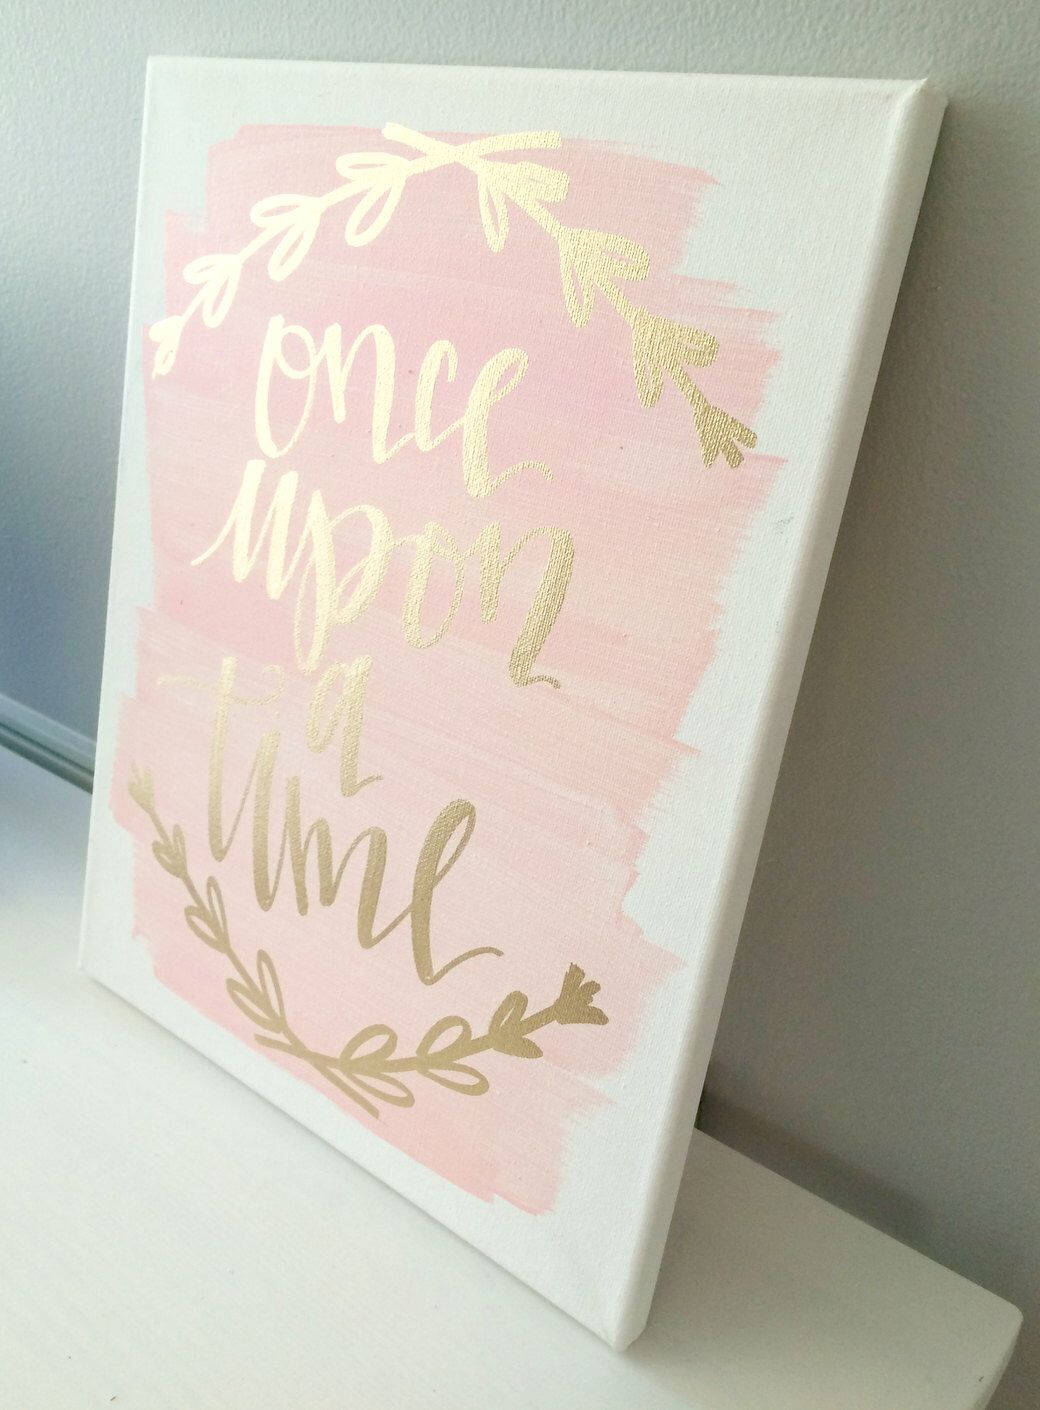 Teenage Girl Wall Decor Ideas 27 43 Girls Room Decor Ideas To Change The Feel Of The Room